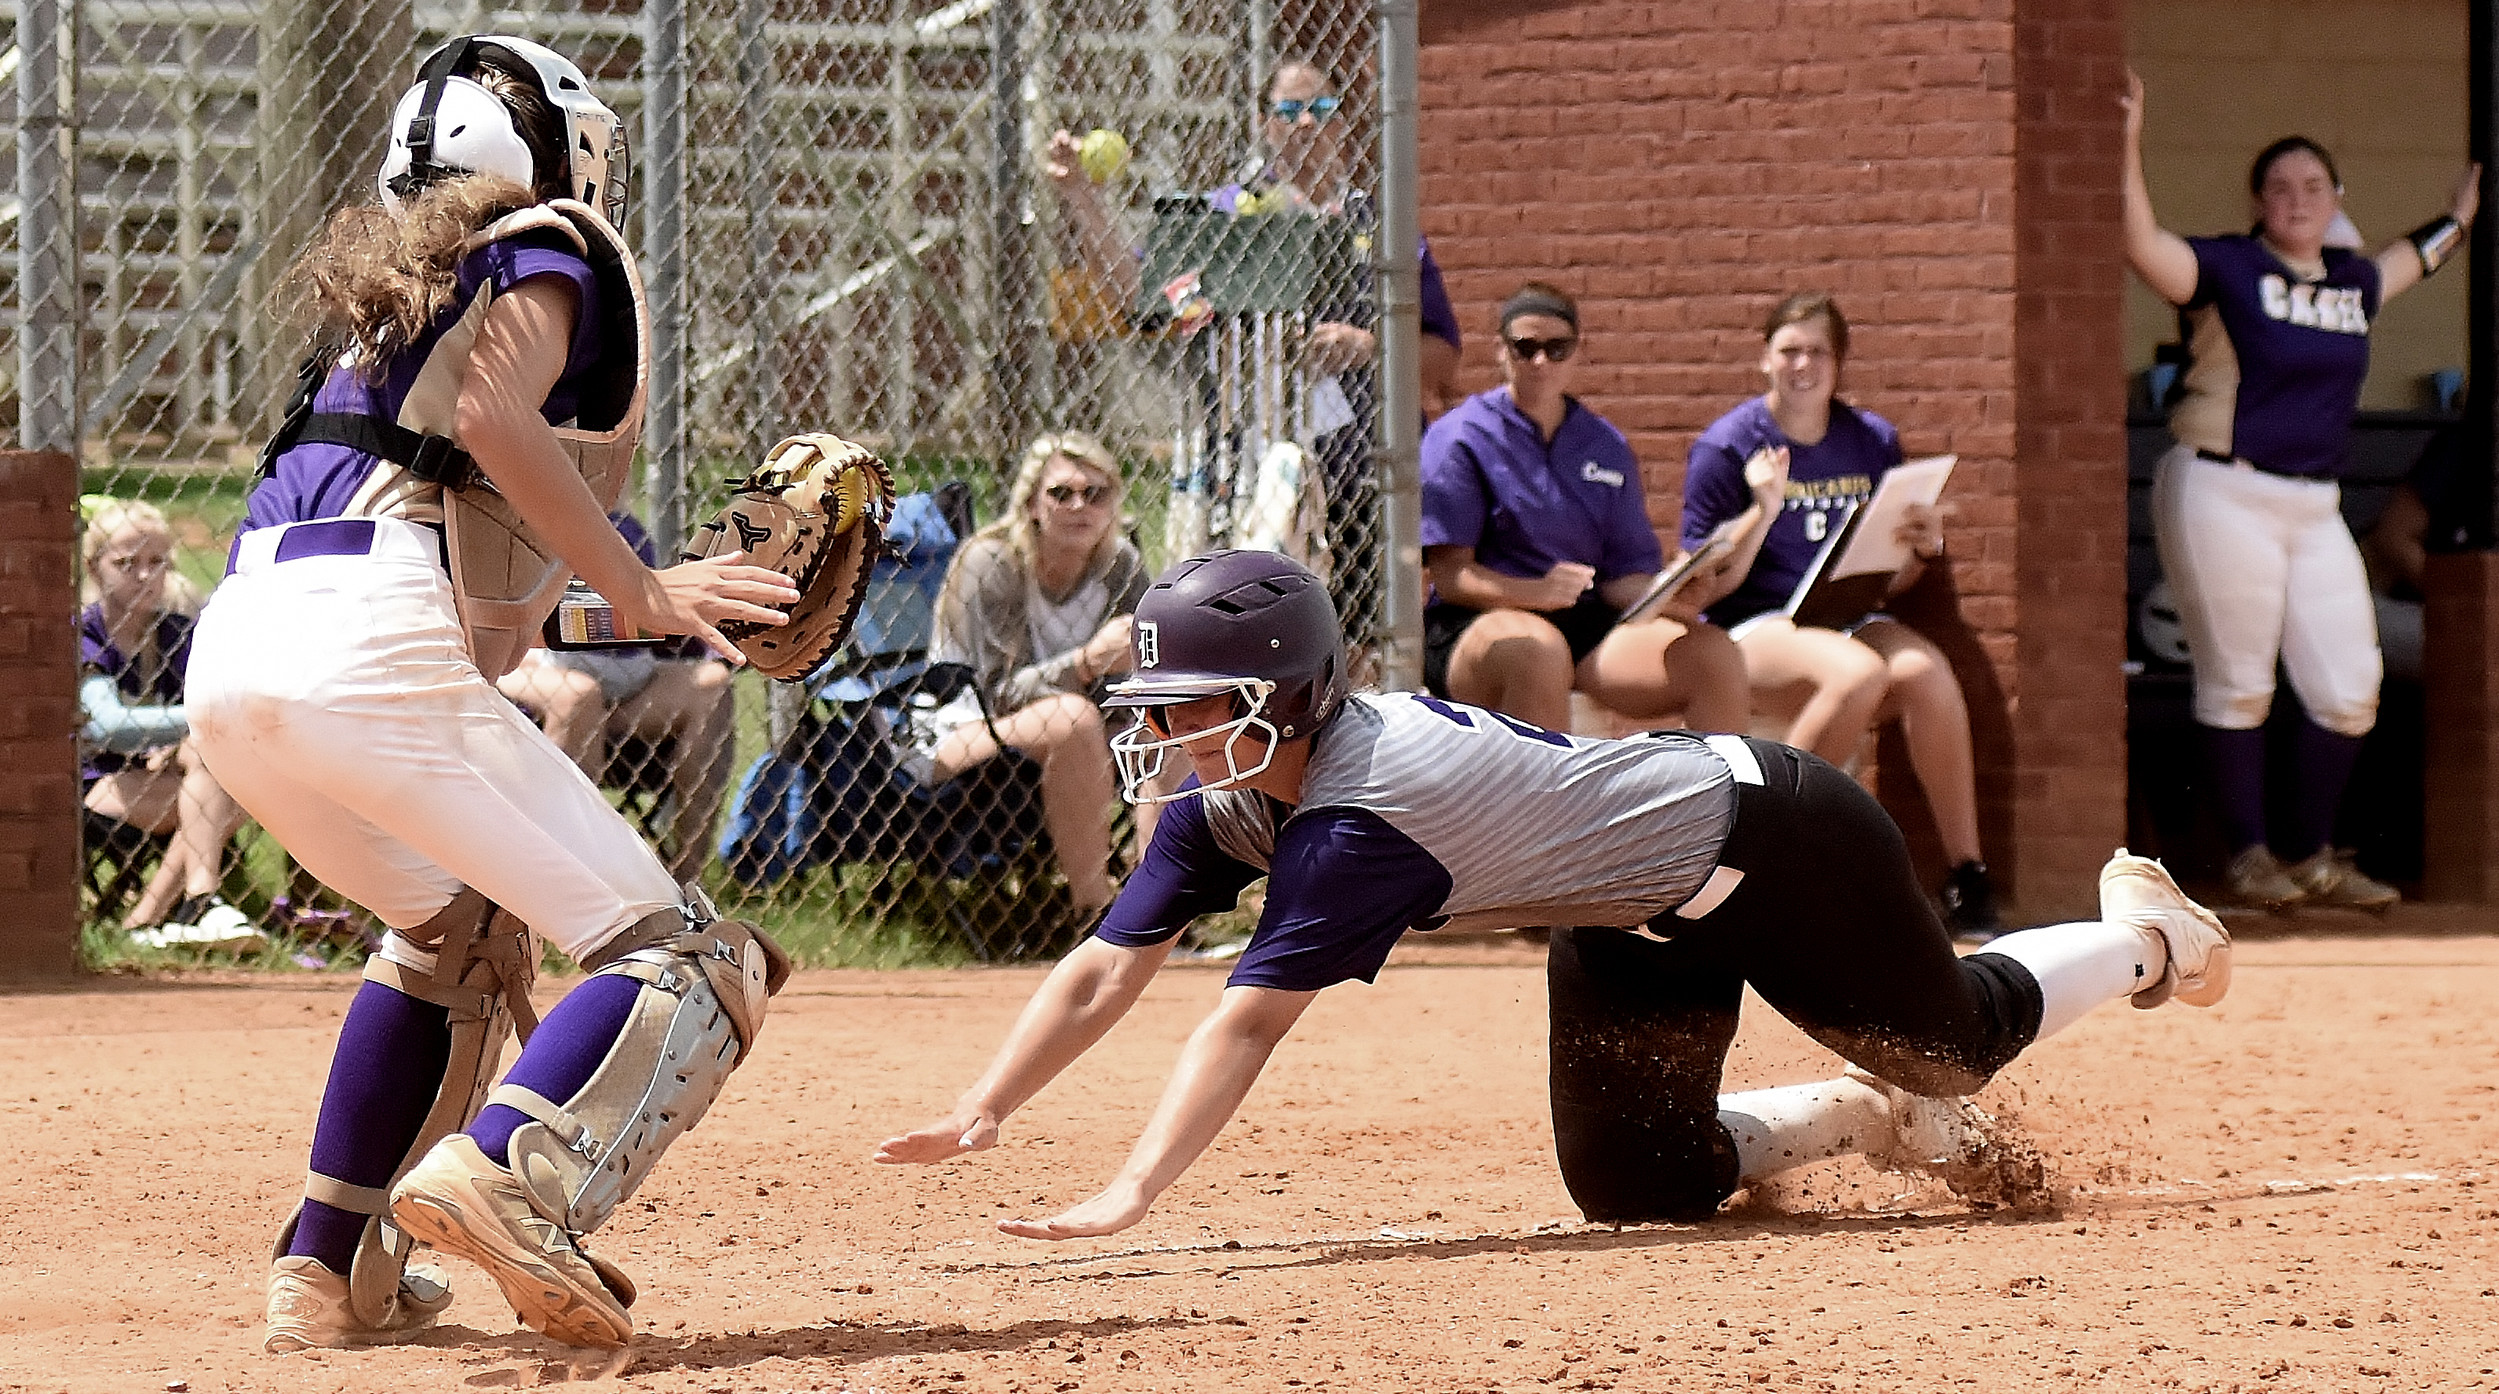 Cartersville catcher Lauren McElhaney prepares to tag a Darlington runner out at the plate for the final out of the Canes' 7-5 victory Saturday.